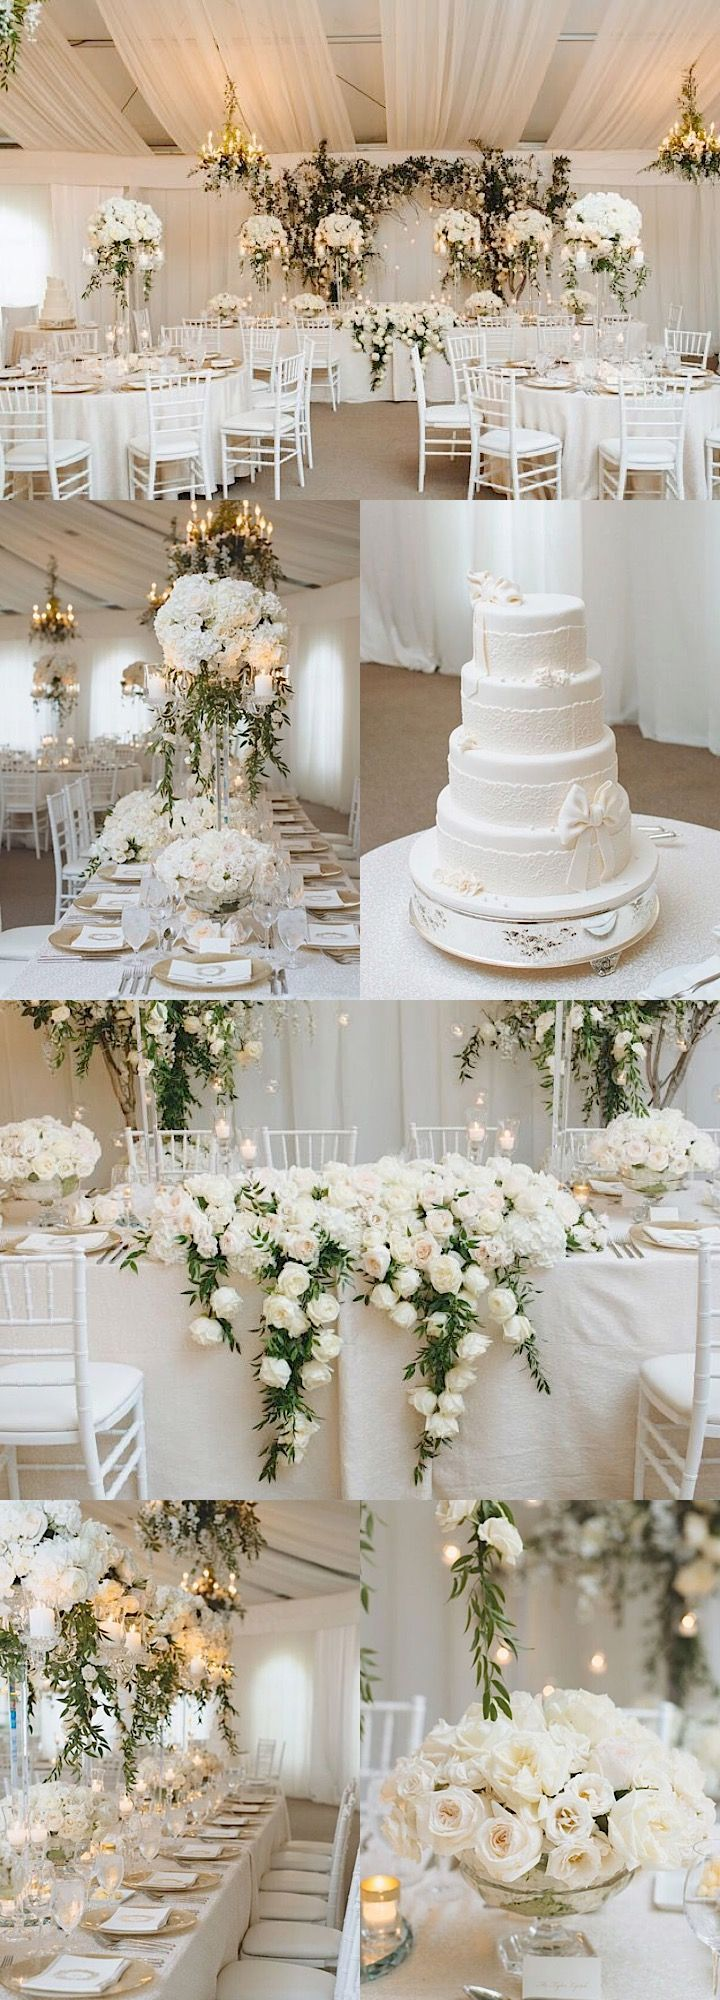 wedding decoration ideas south africa%0A Elegant white wedding reception idea  photo  Mango Studios